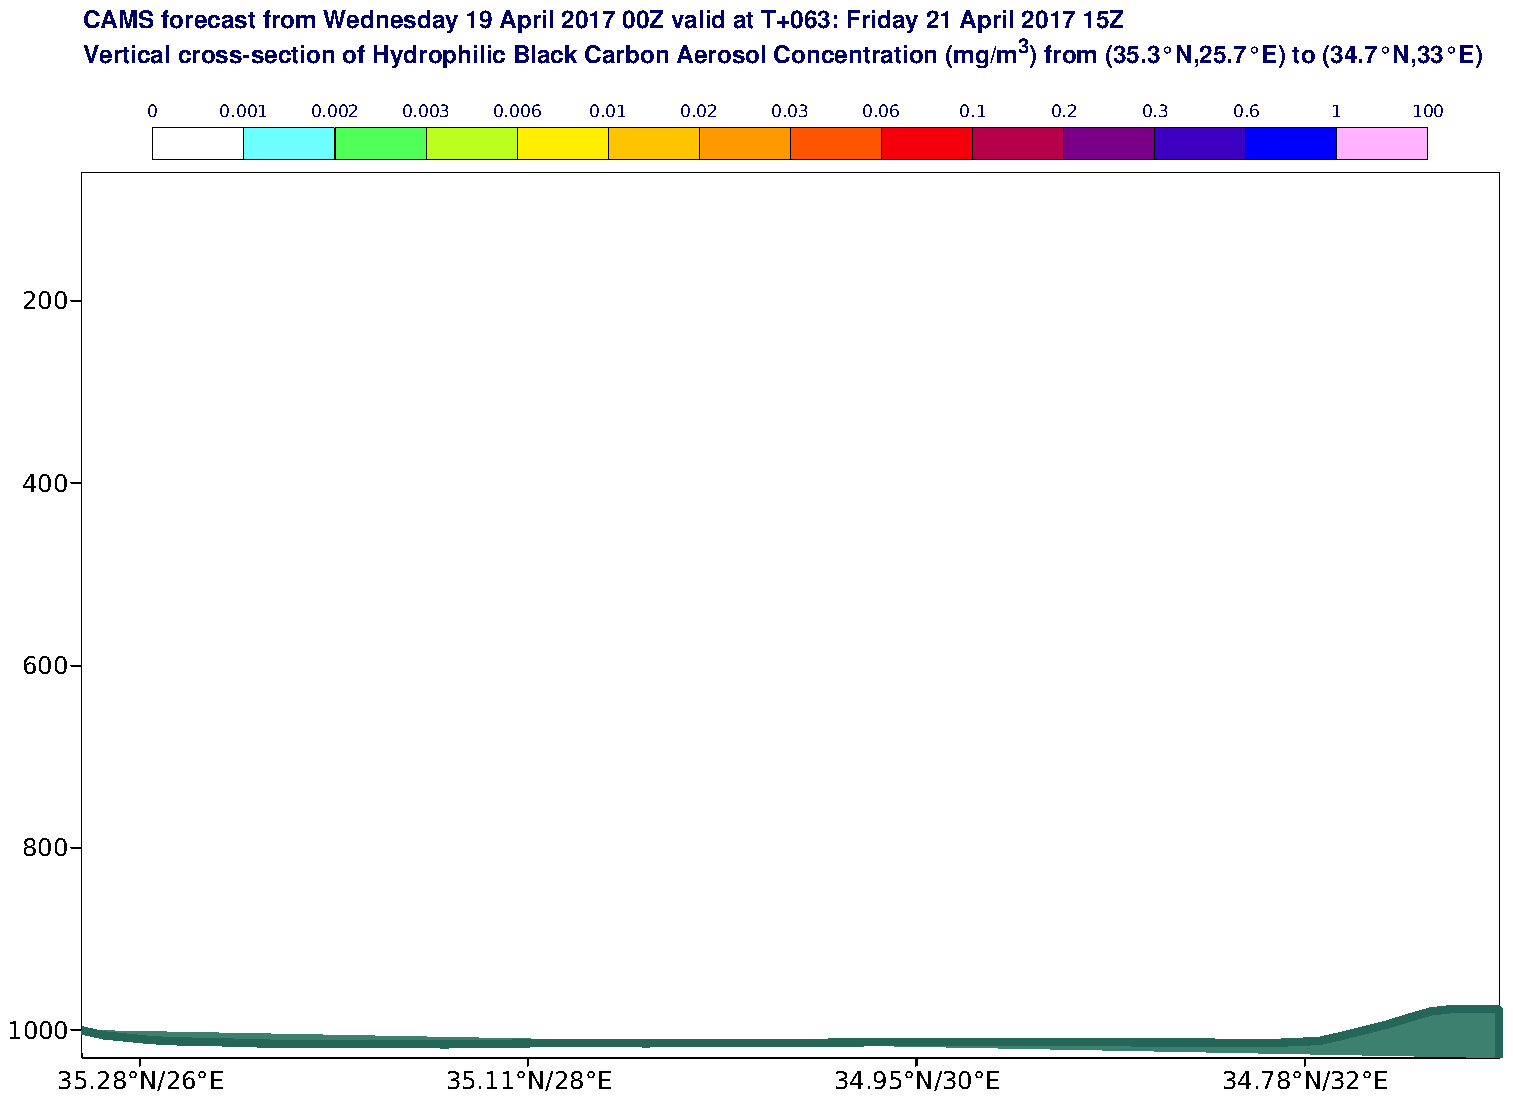 Vertical cross-section of Hydrophilic Black Carbon Aerosol Concentration (mg/m3) valid at T63 - 2017-04-21 15:00